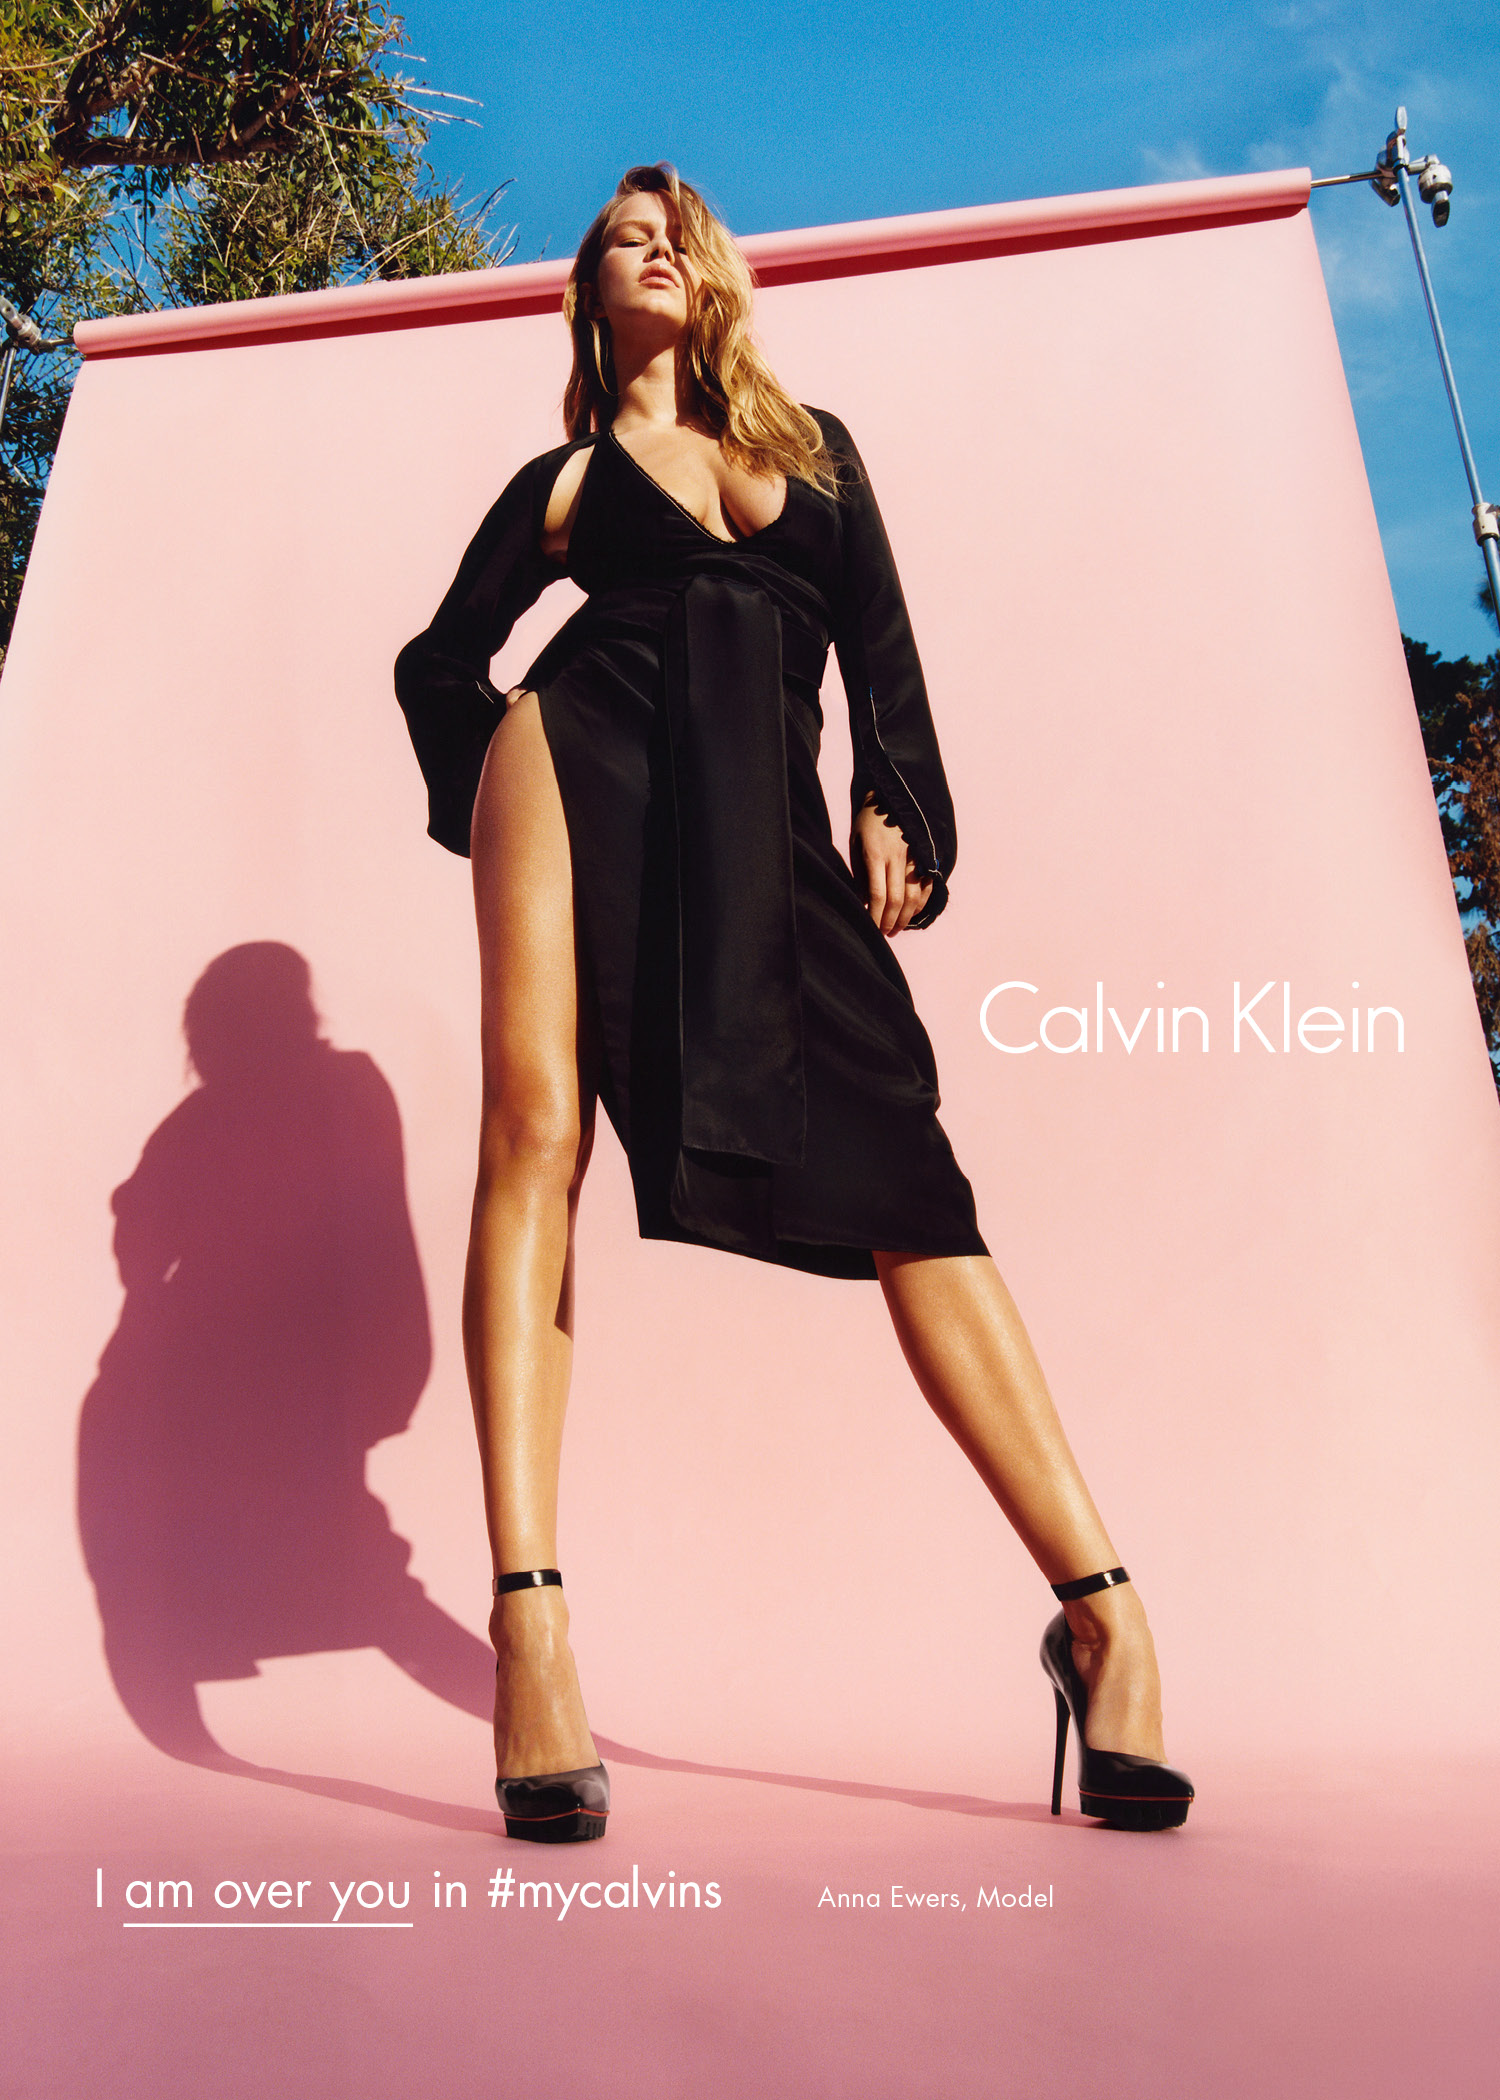 CK Fall 2016 campaign featuring model Anna Ewers.